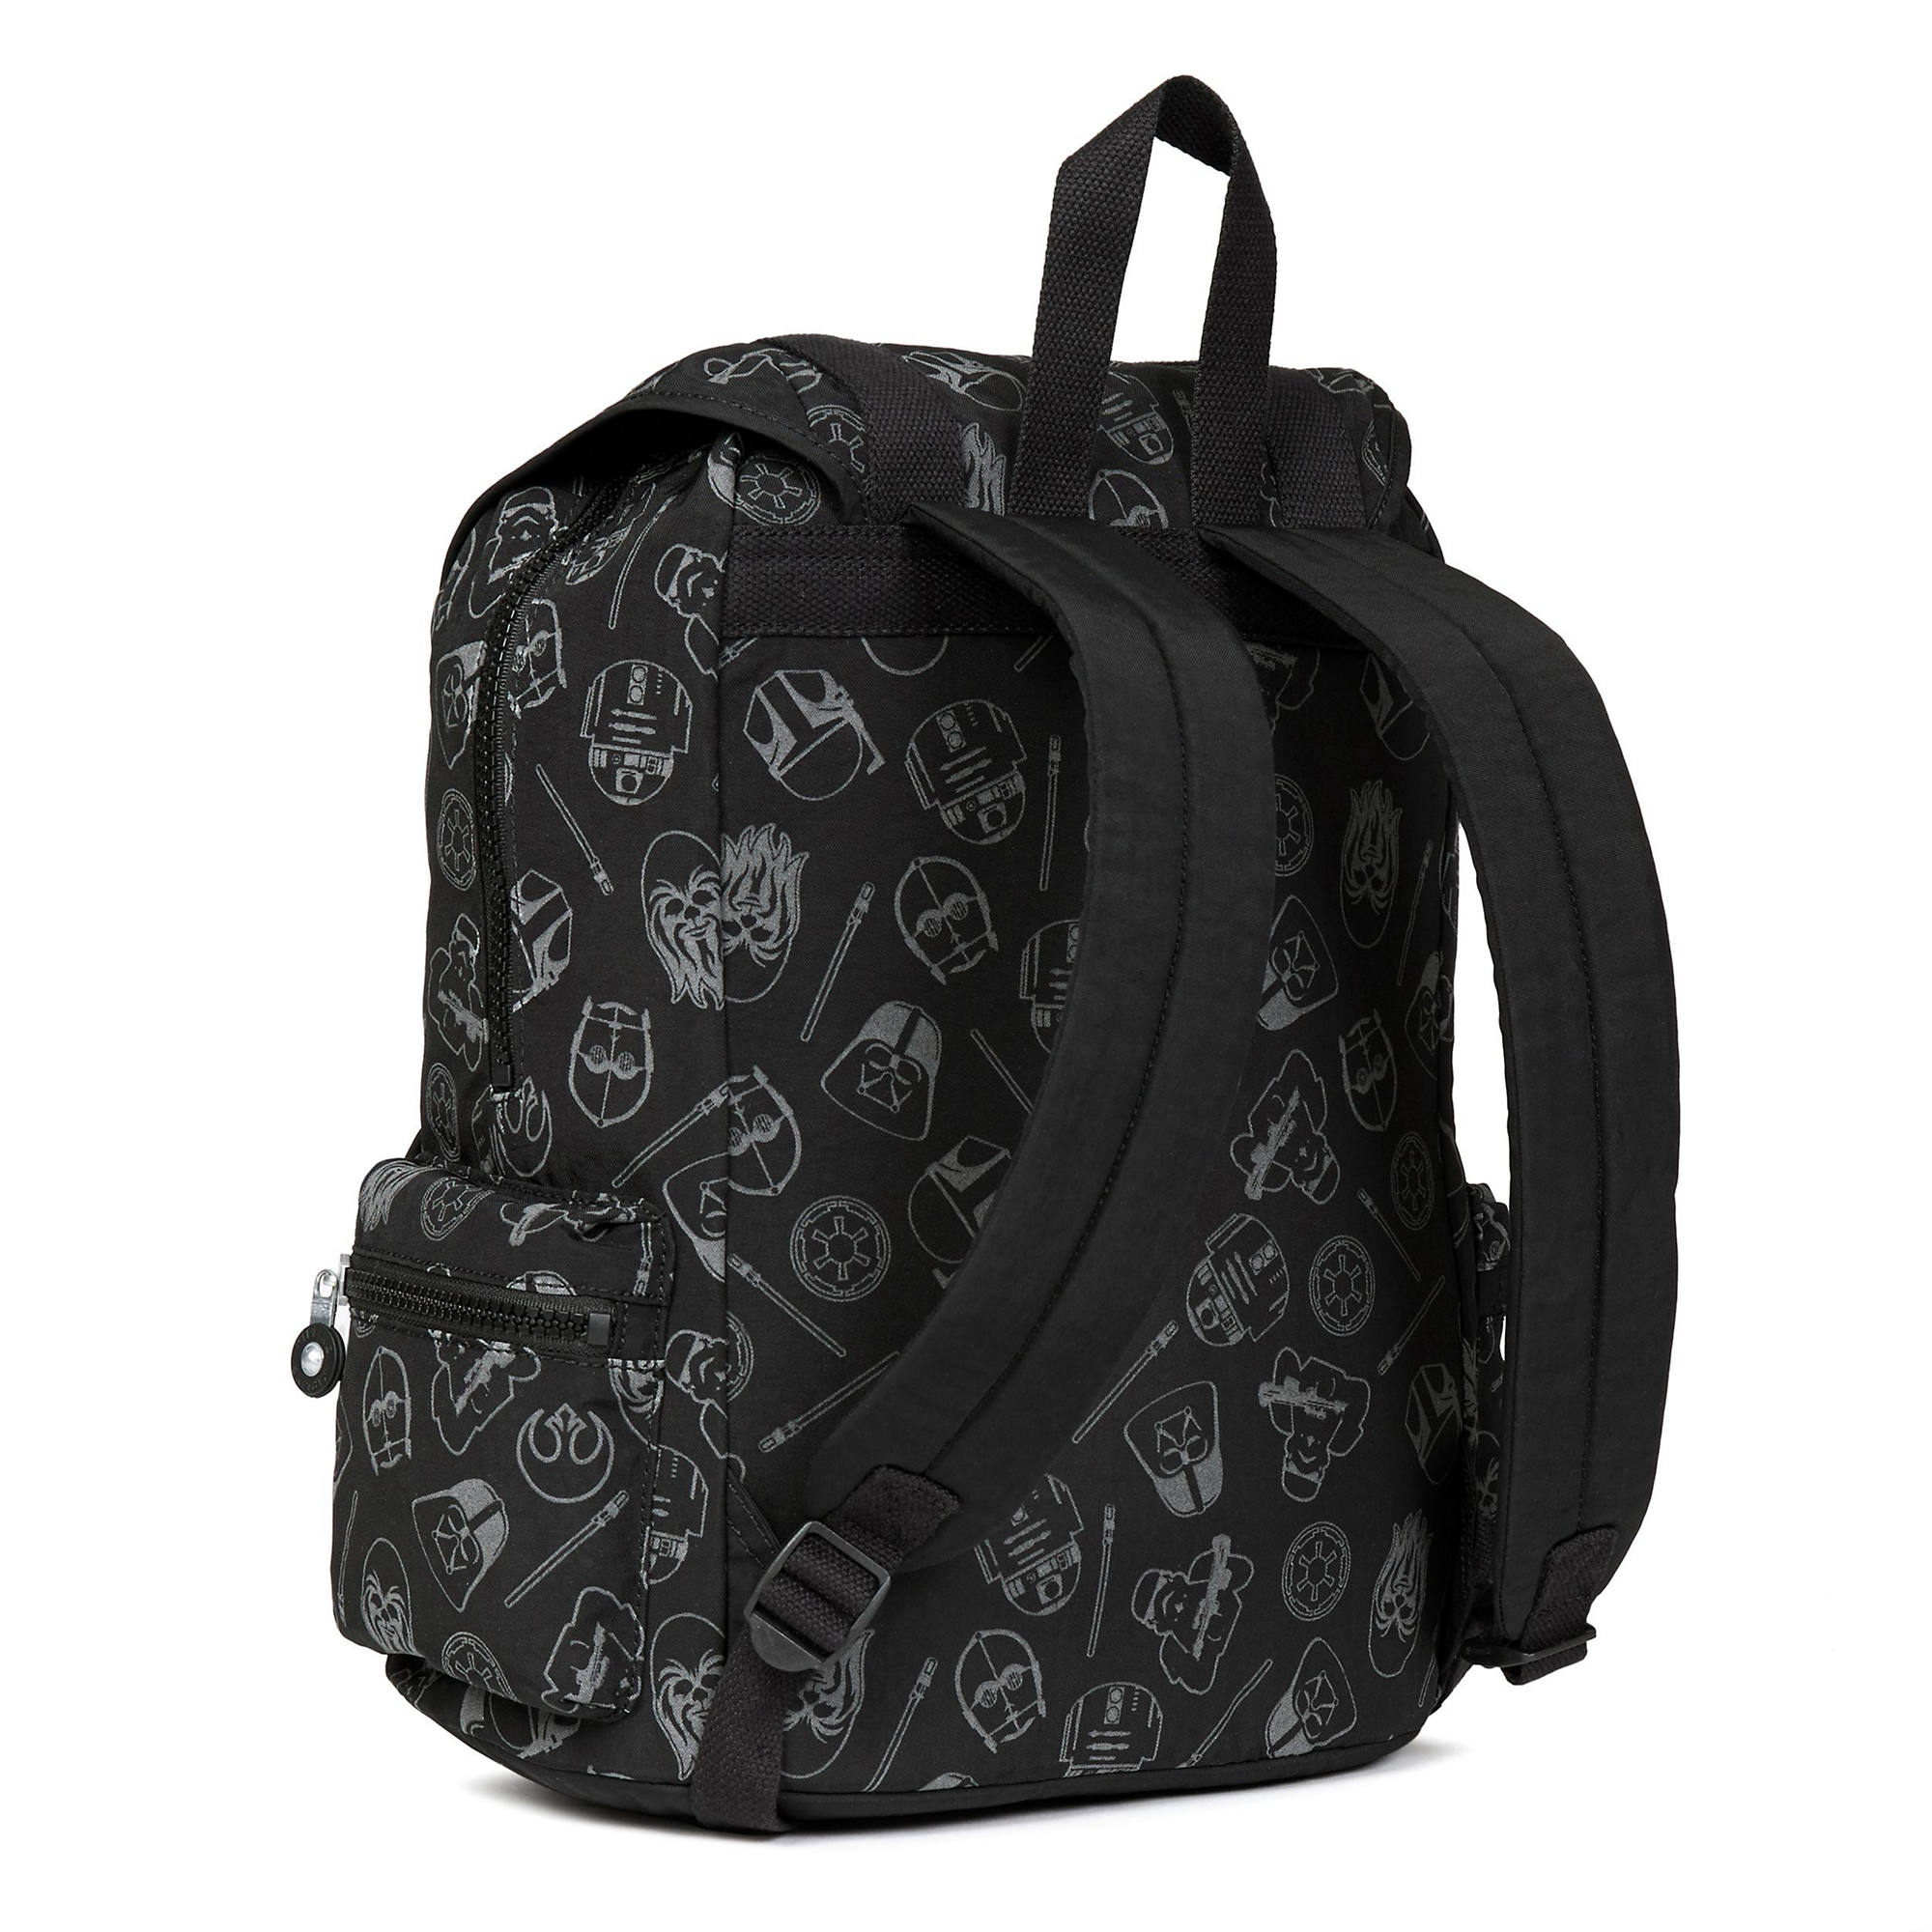 Star Wars Siggy Printed Large Reflective Laptop Backpack